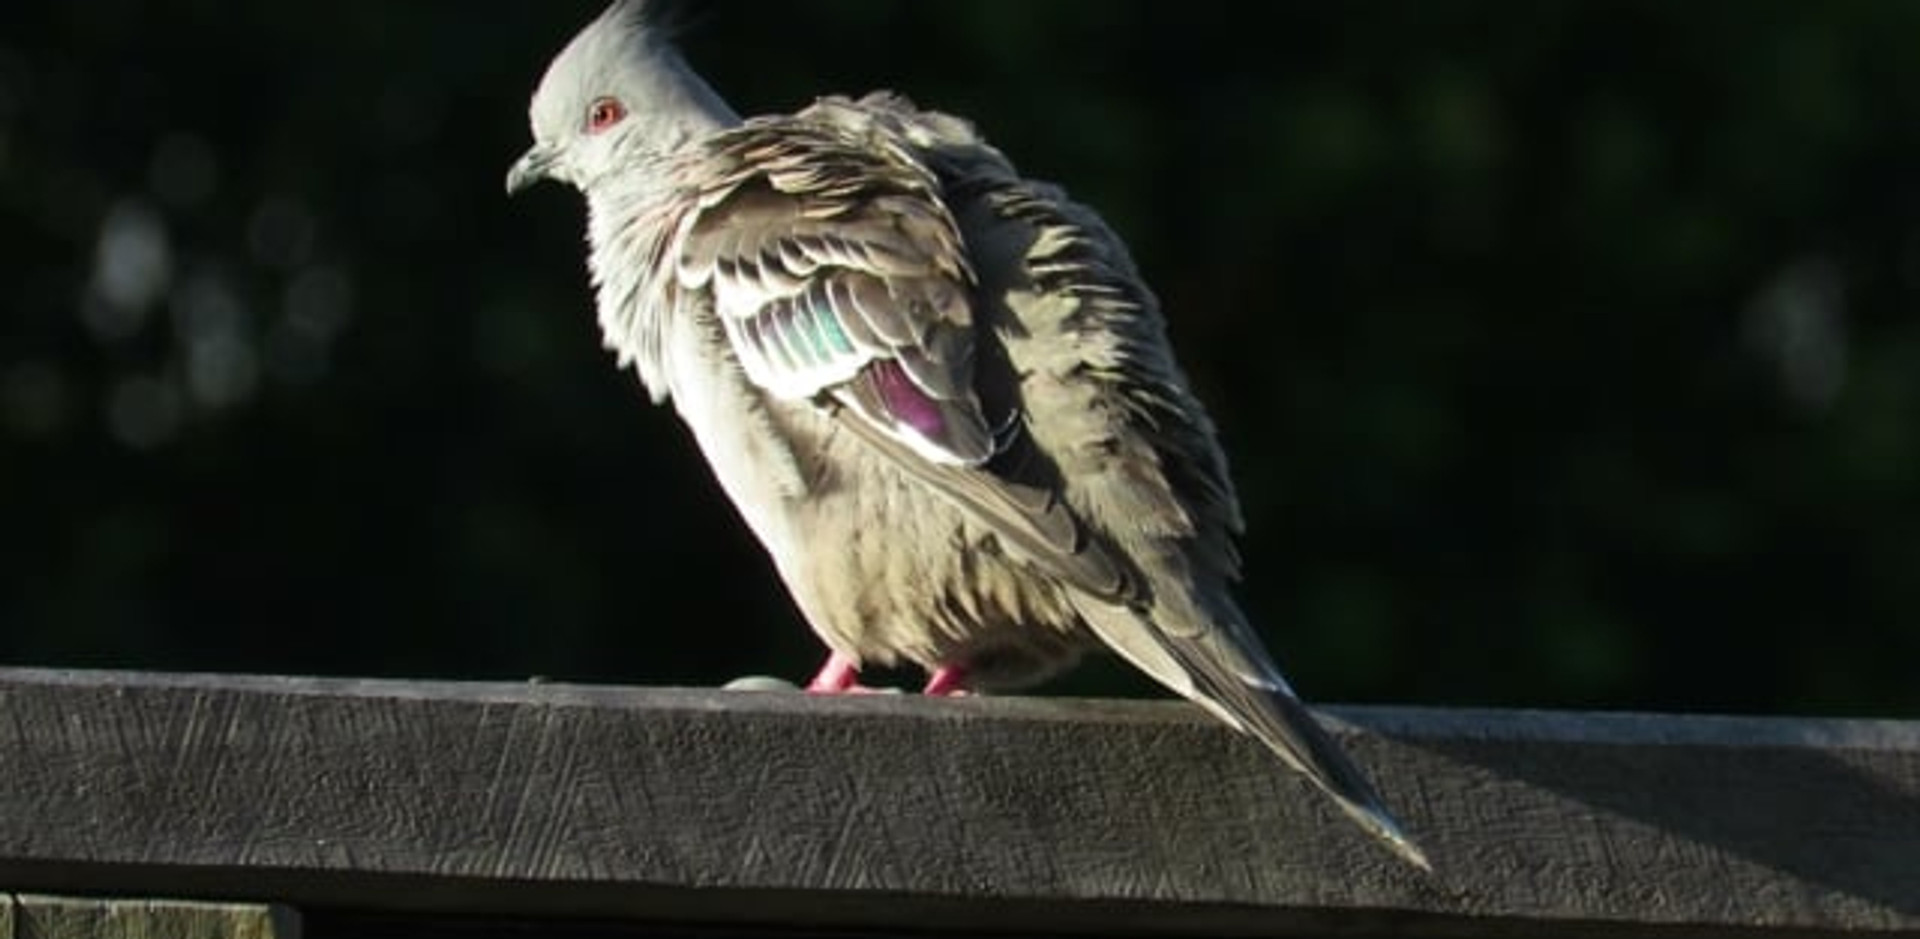 Adult Crested Pigeon preening in early morning sun